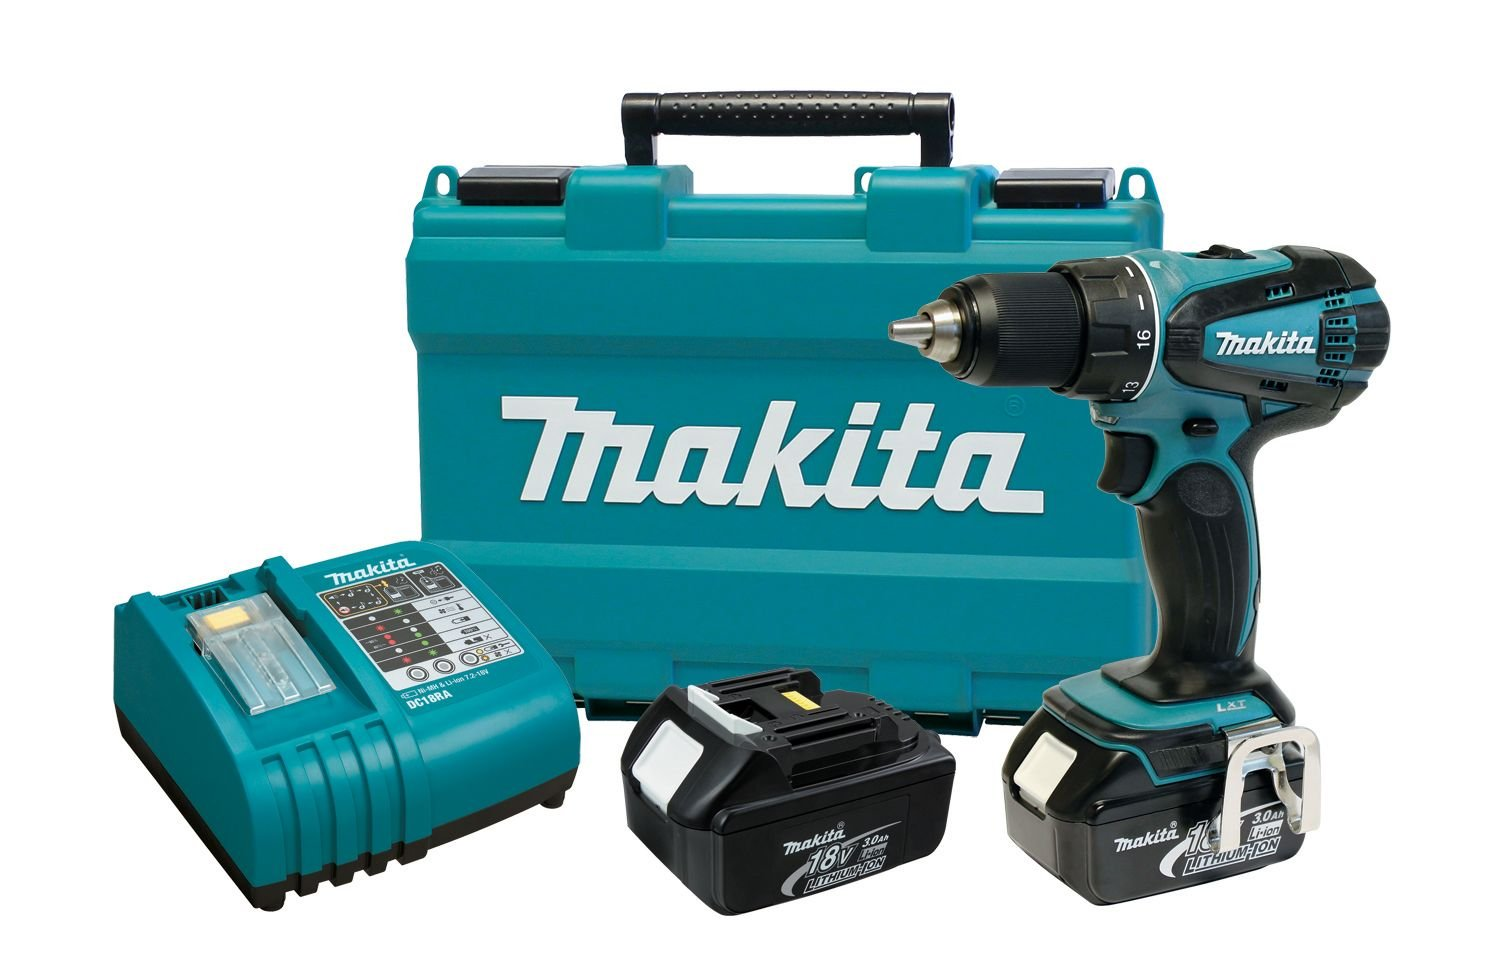 Makita LXFD01 18V LXT Lithium-Ion Cordless 1 2 Inch Driver-Drill Kit Discontinued by Manufacturer